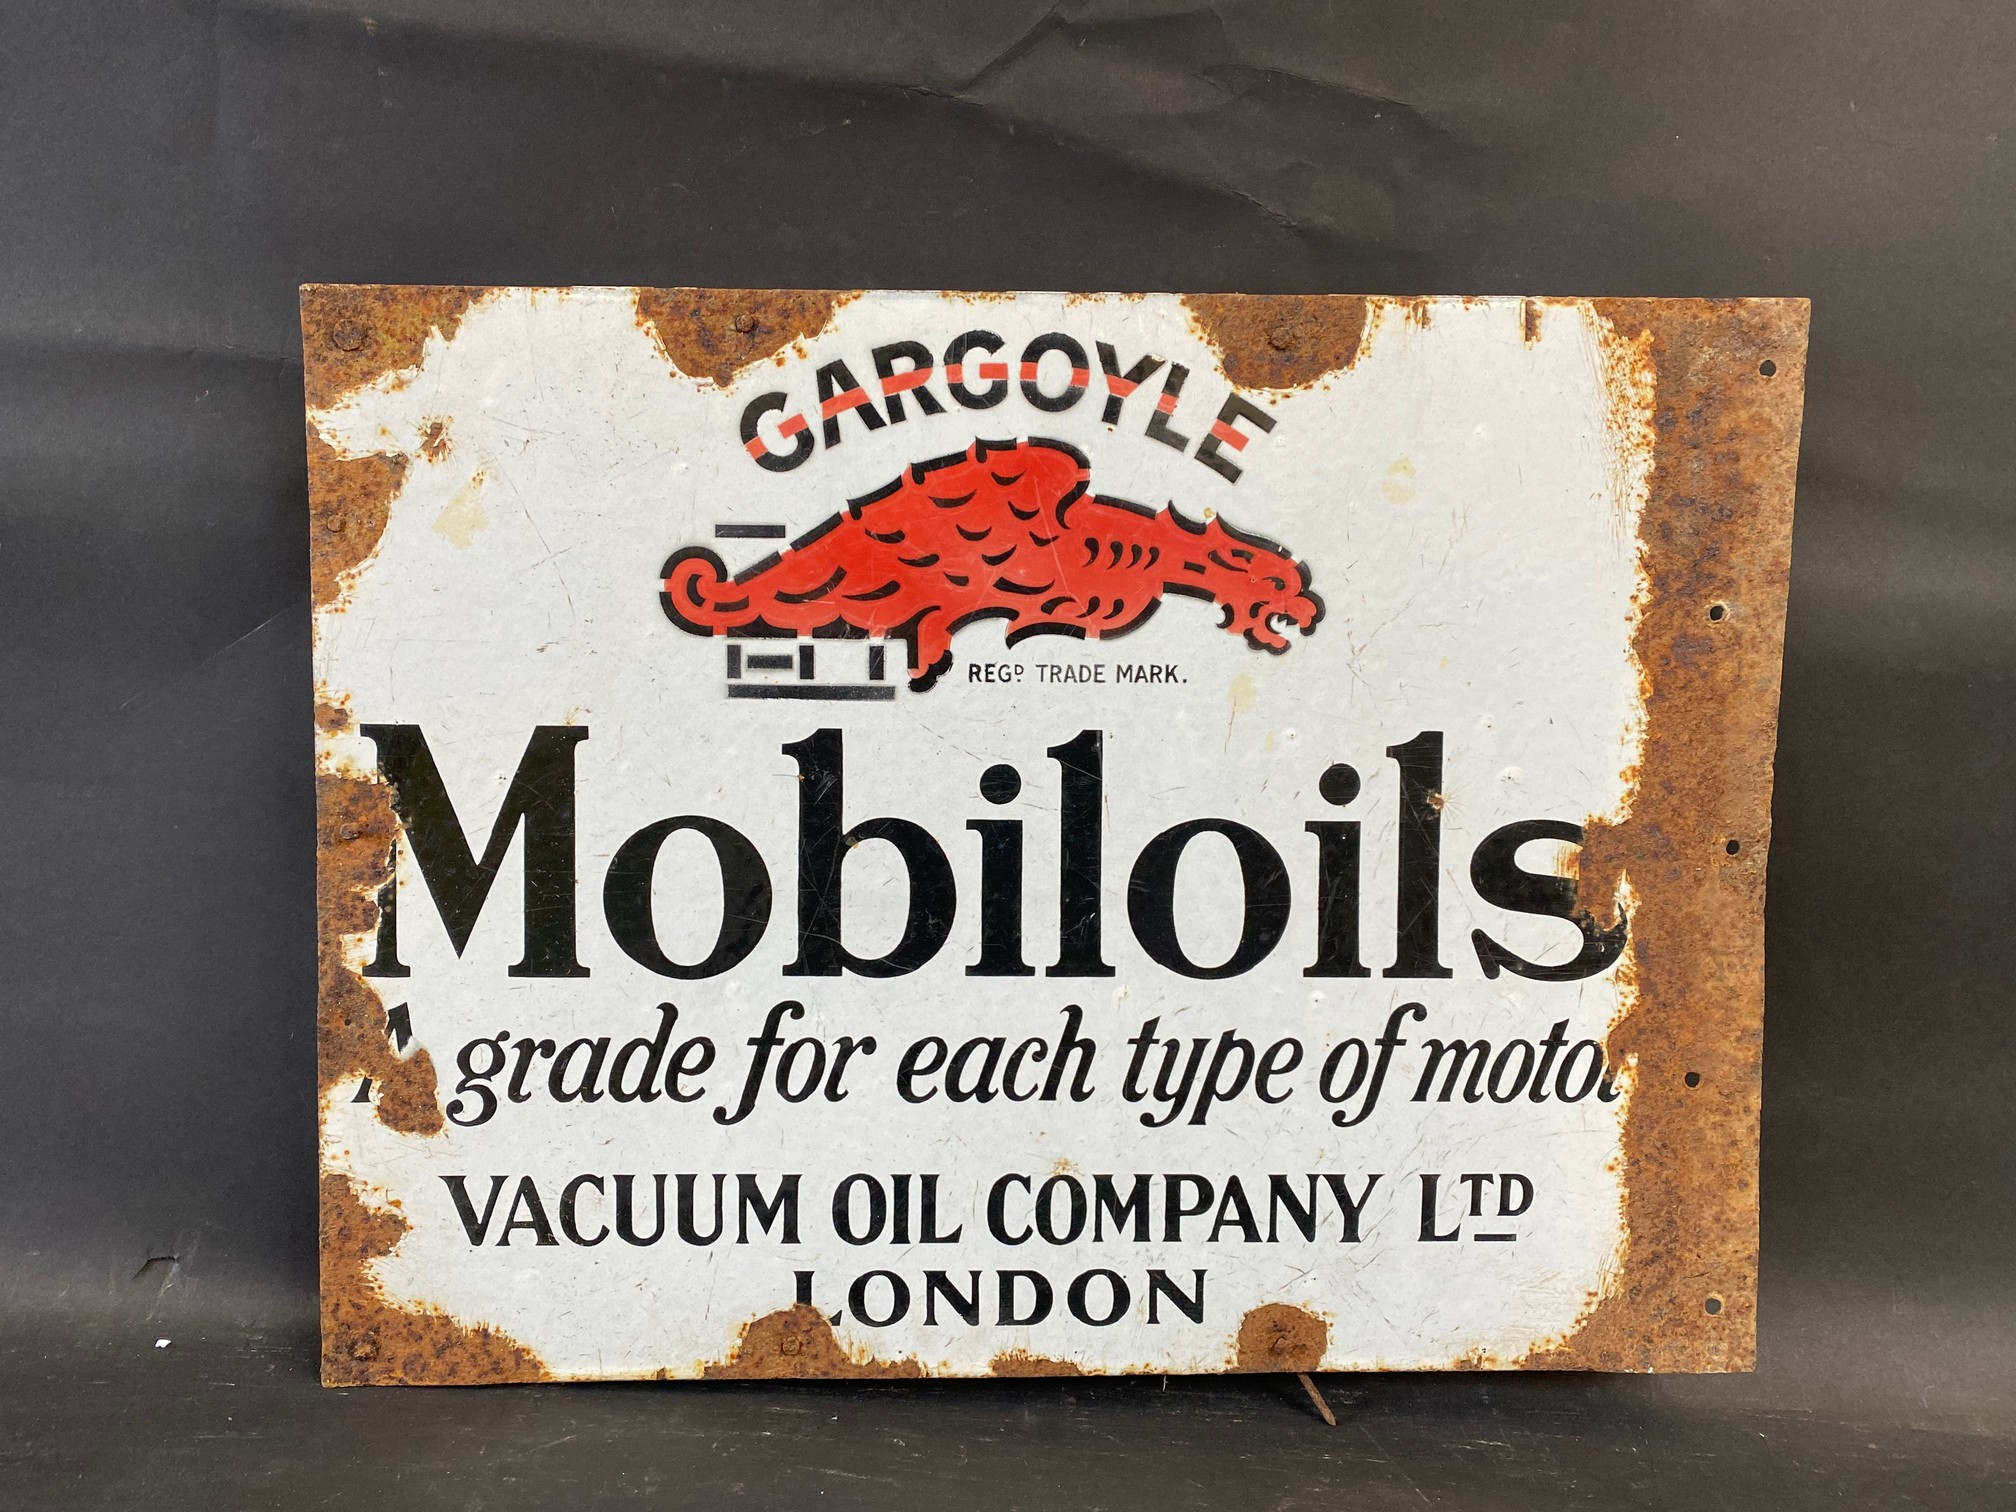 A Gargoyle Mobiloils 'a grade for each type of motor' double sided enamel sign with flattened